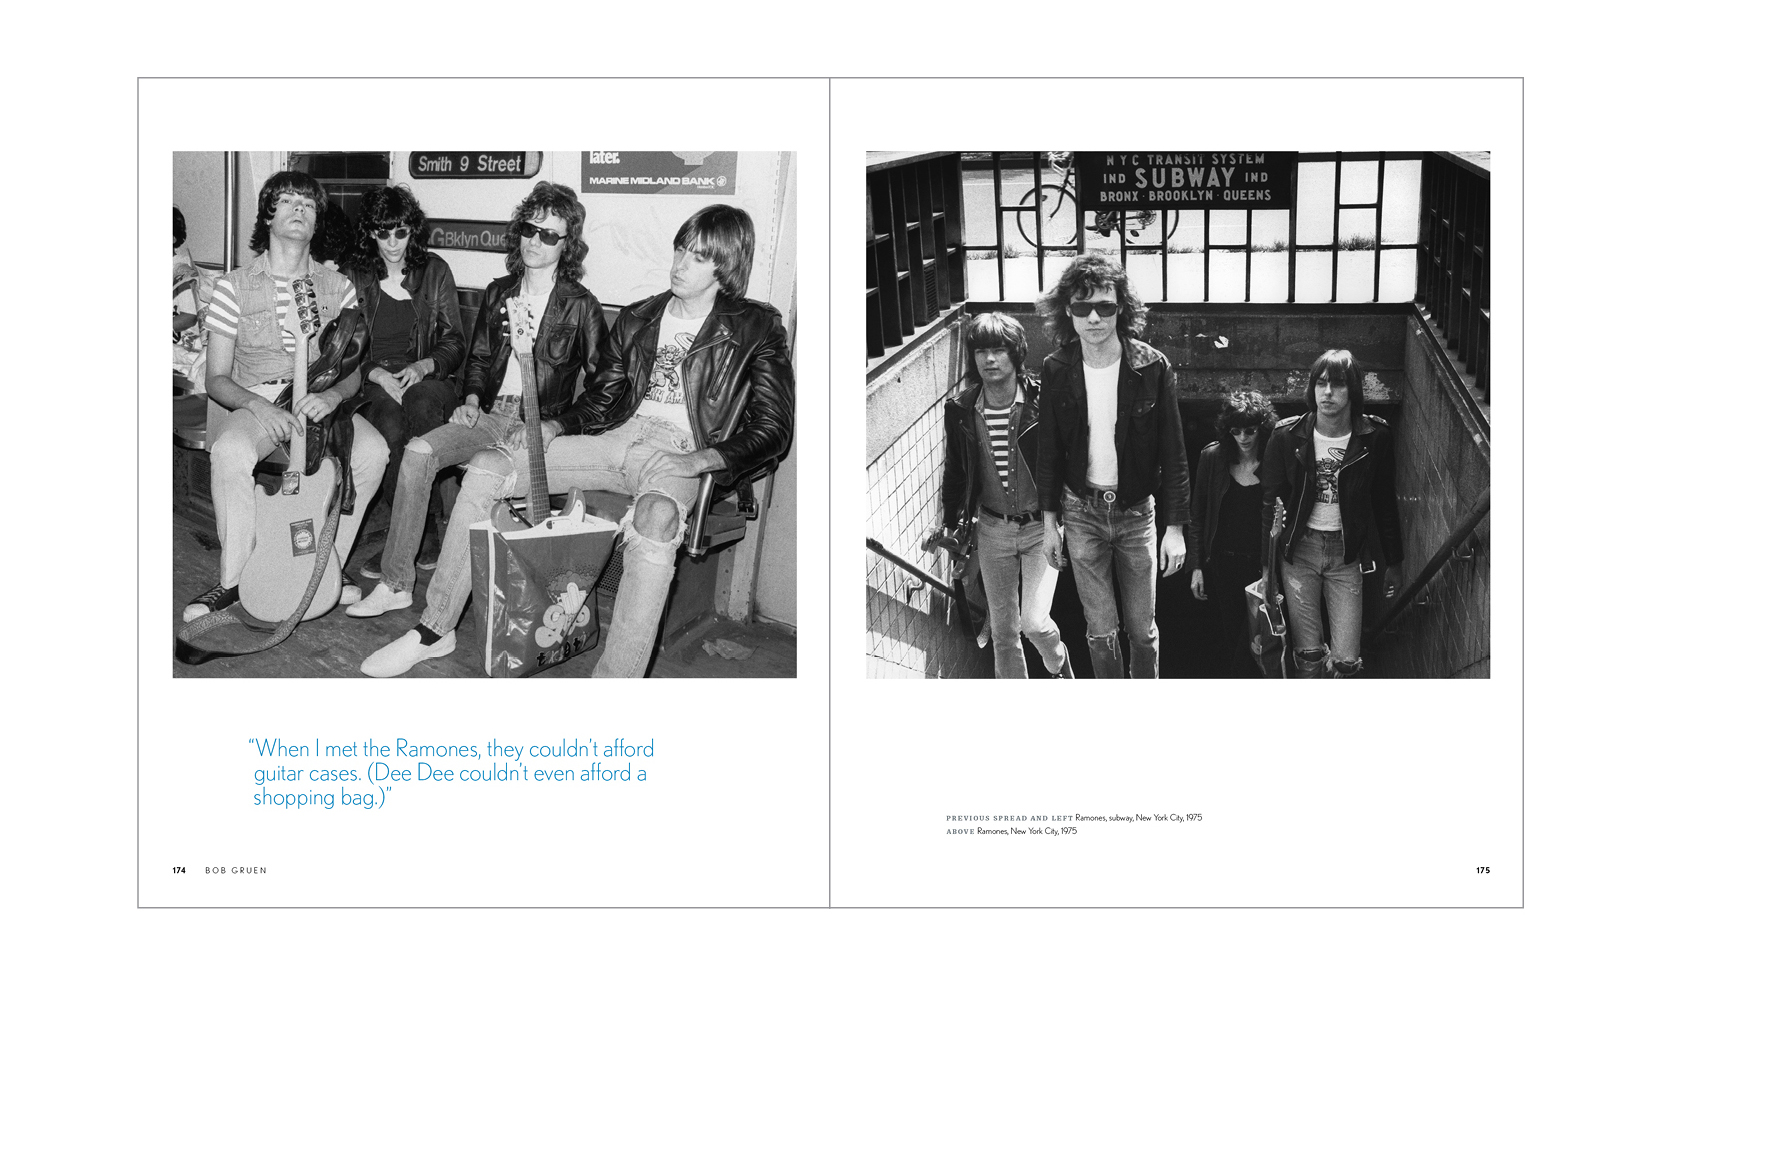 Typical spread -  The Ramones with author's comment